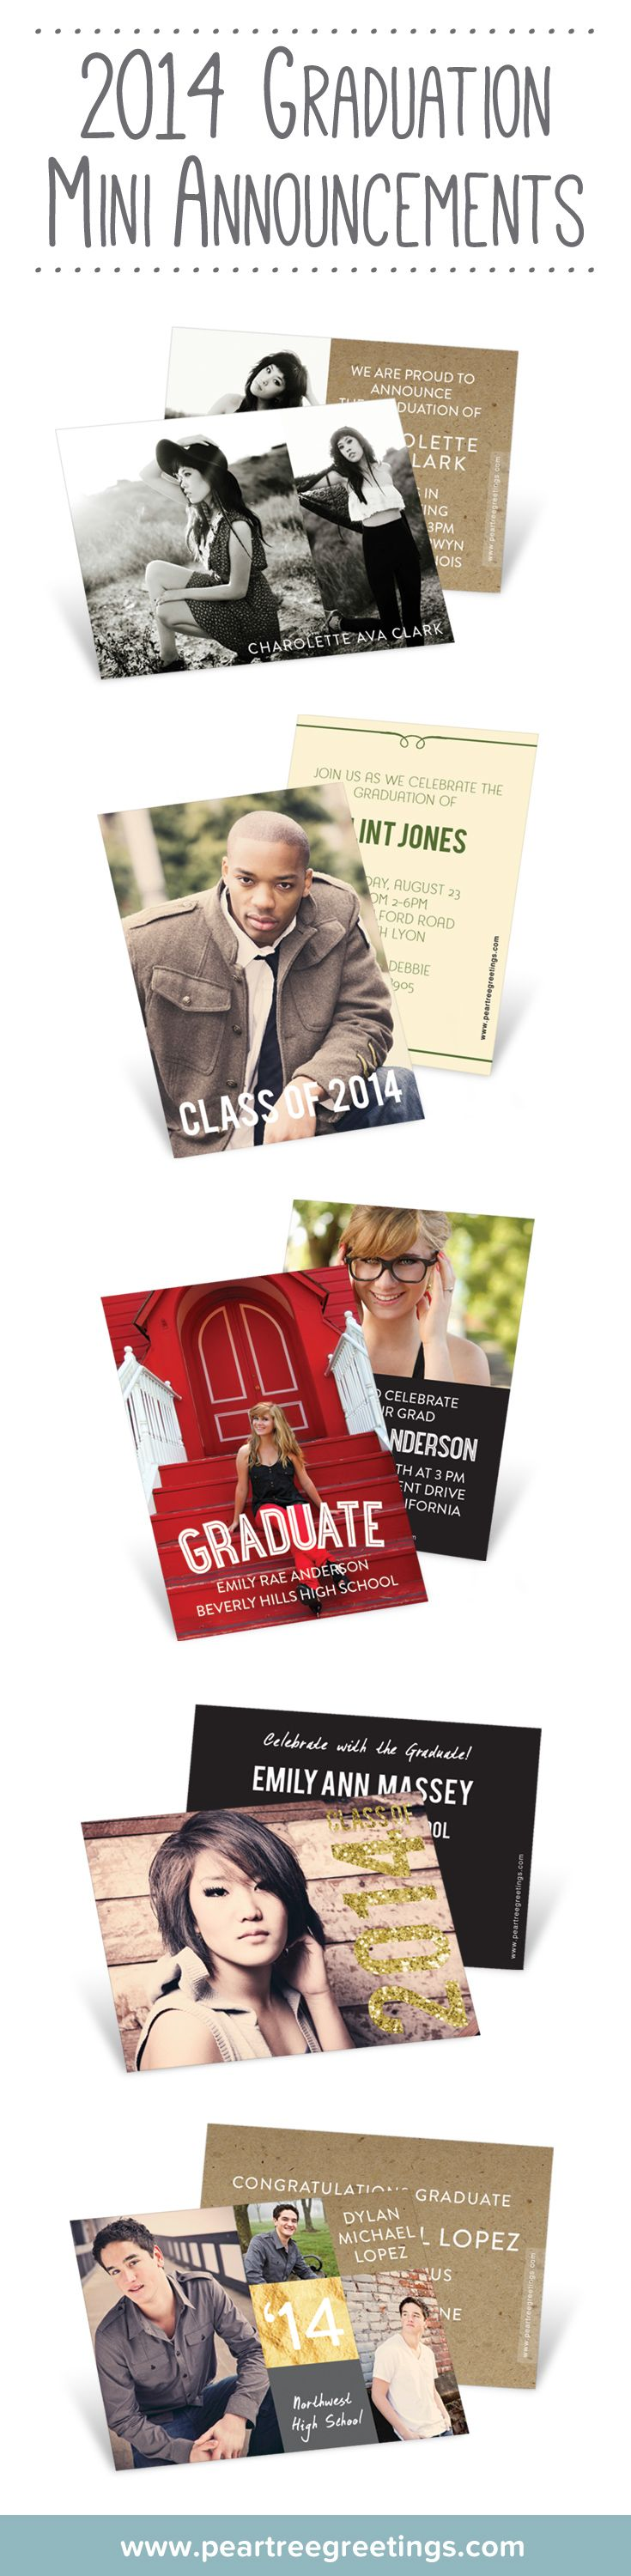 537 best senior pics images on Pinterest Graduation ideas Senior